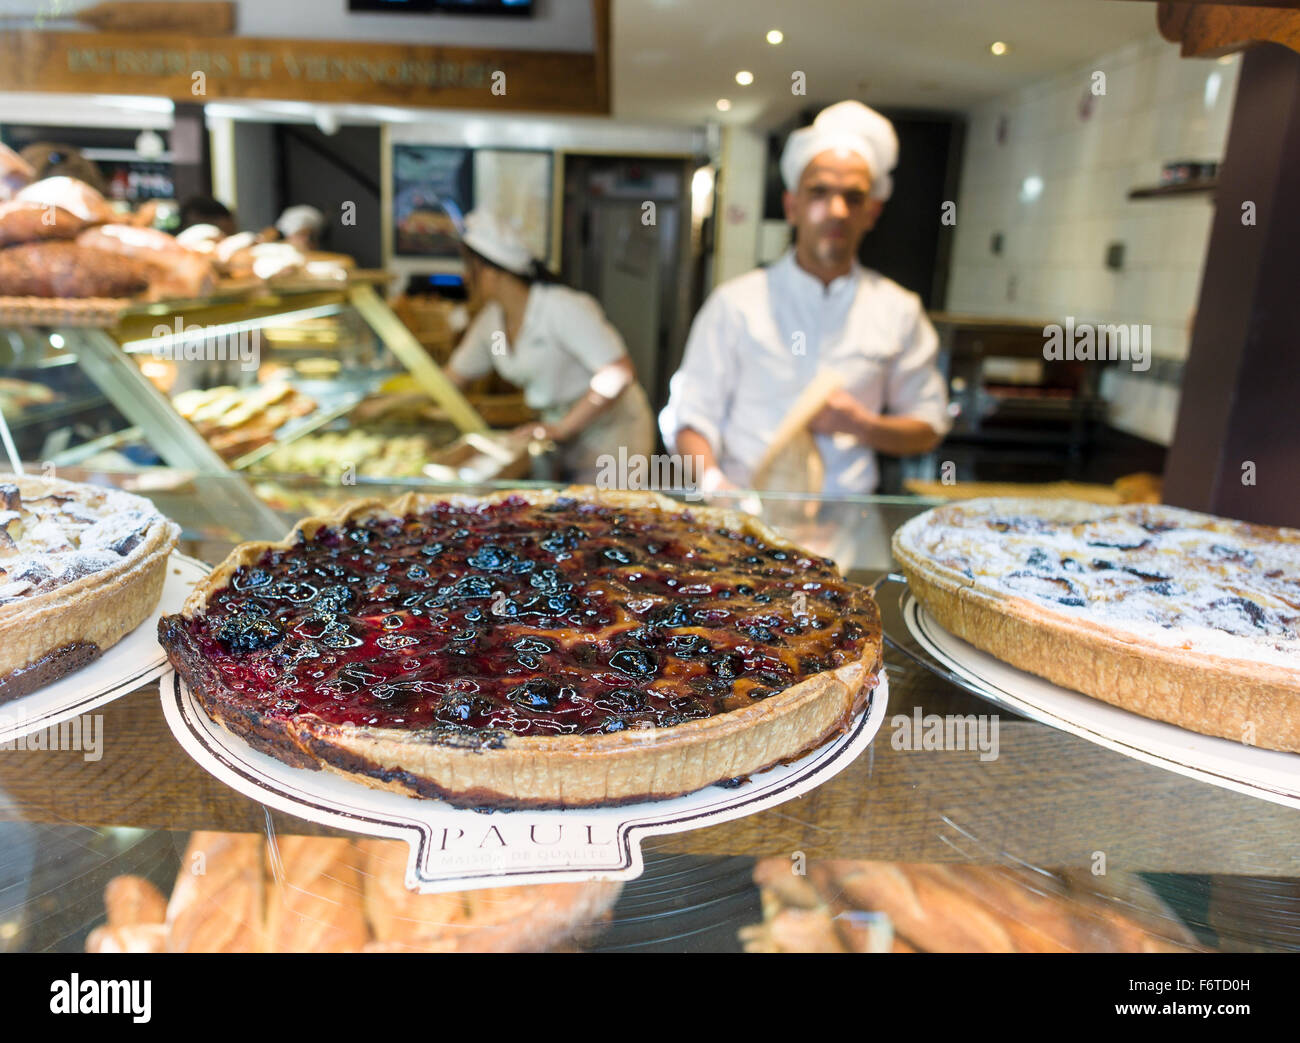 Flan in the Window of Paul Bakery. A well cooked fruit flan graces the window of Paul on the champs-Elysees in Paris. - Stock Image